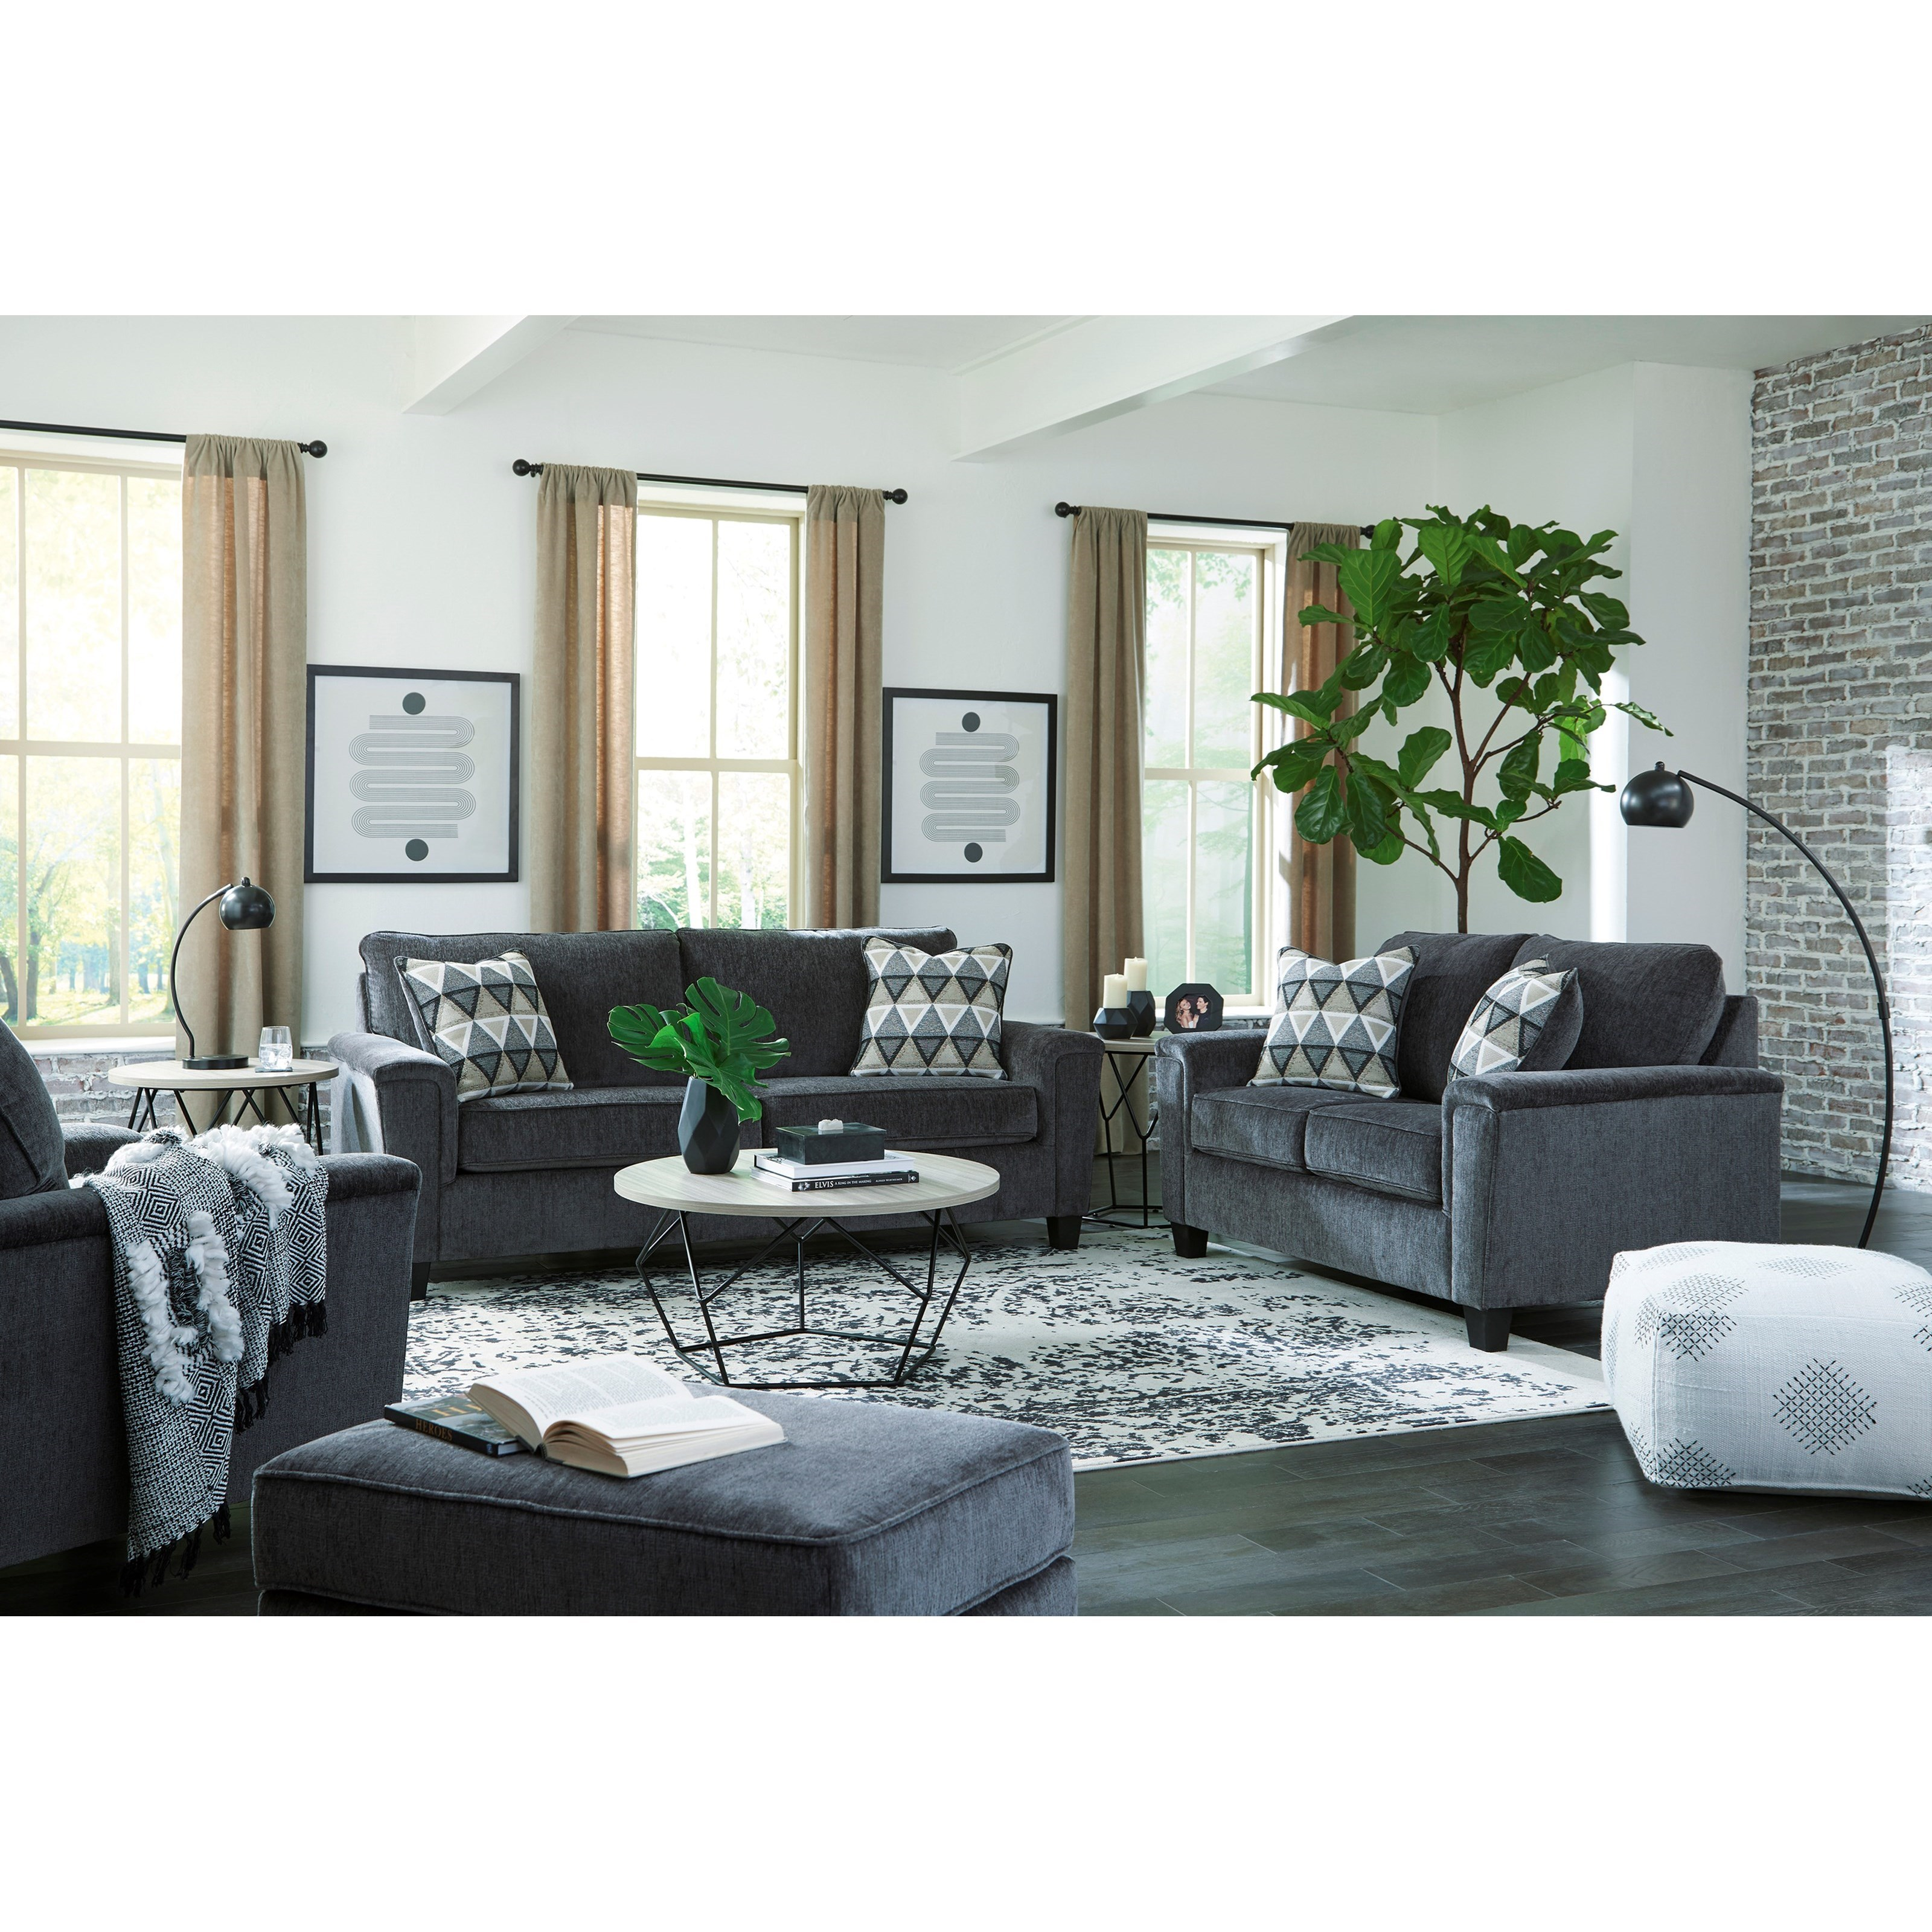 Abinger Living Room Group by Ashley Furniture Signature Design at Del Sol Furniture